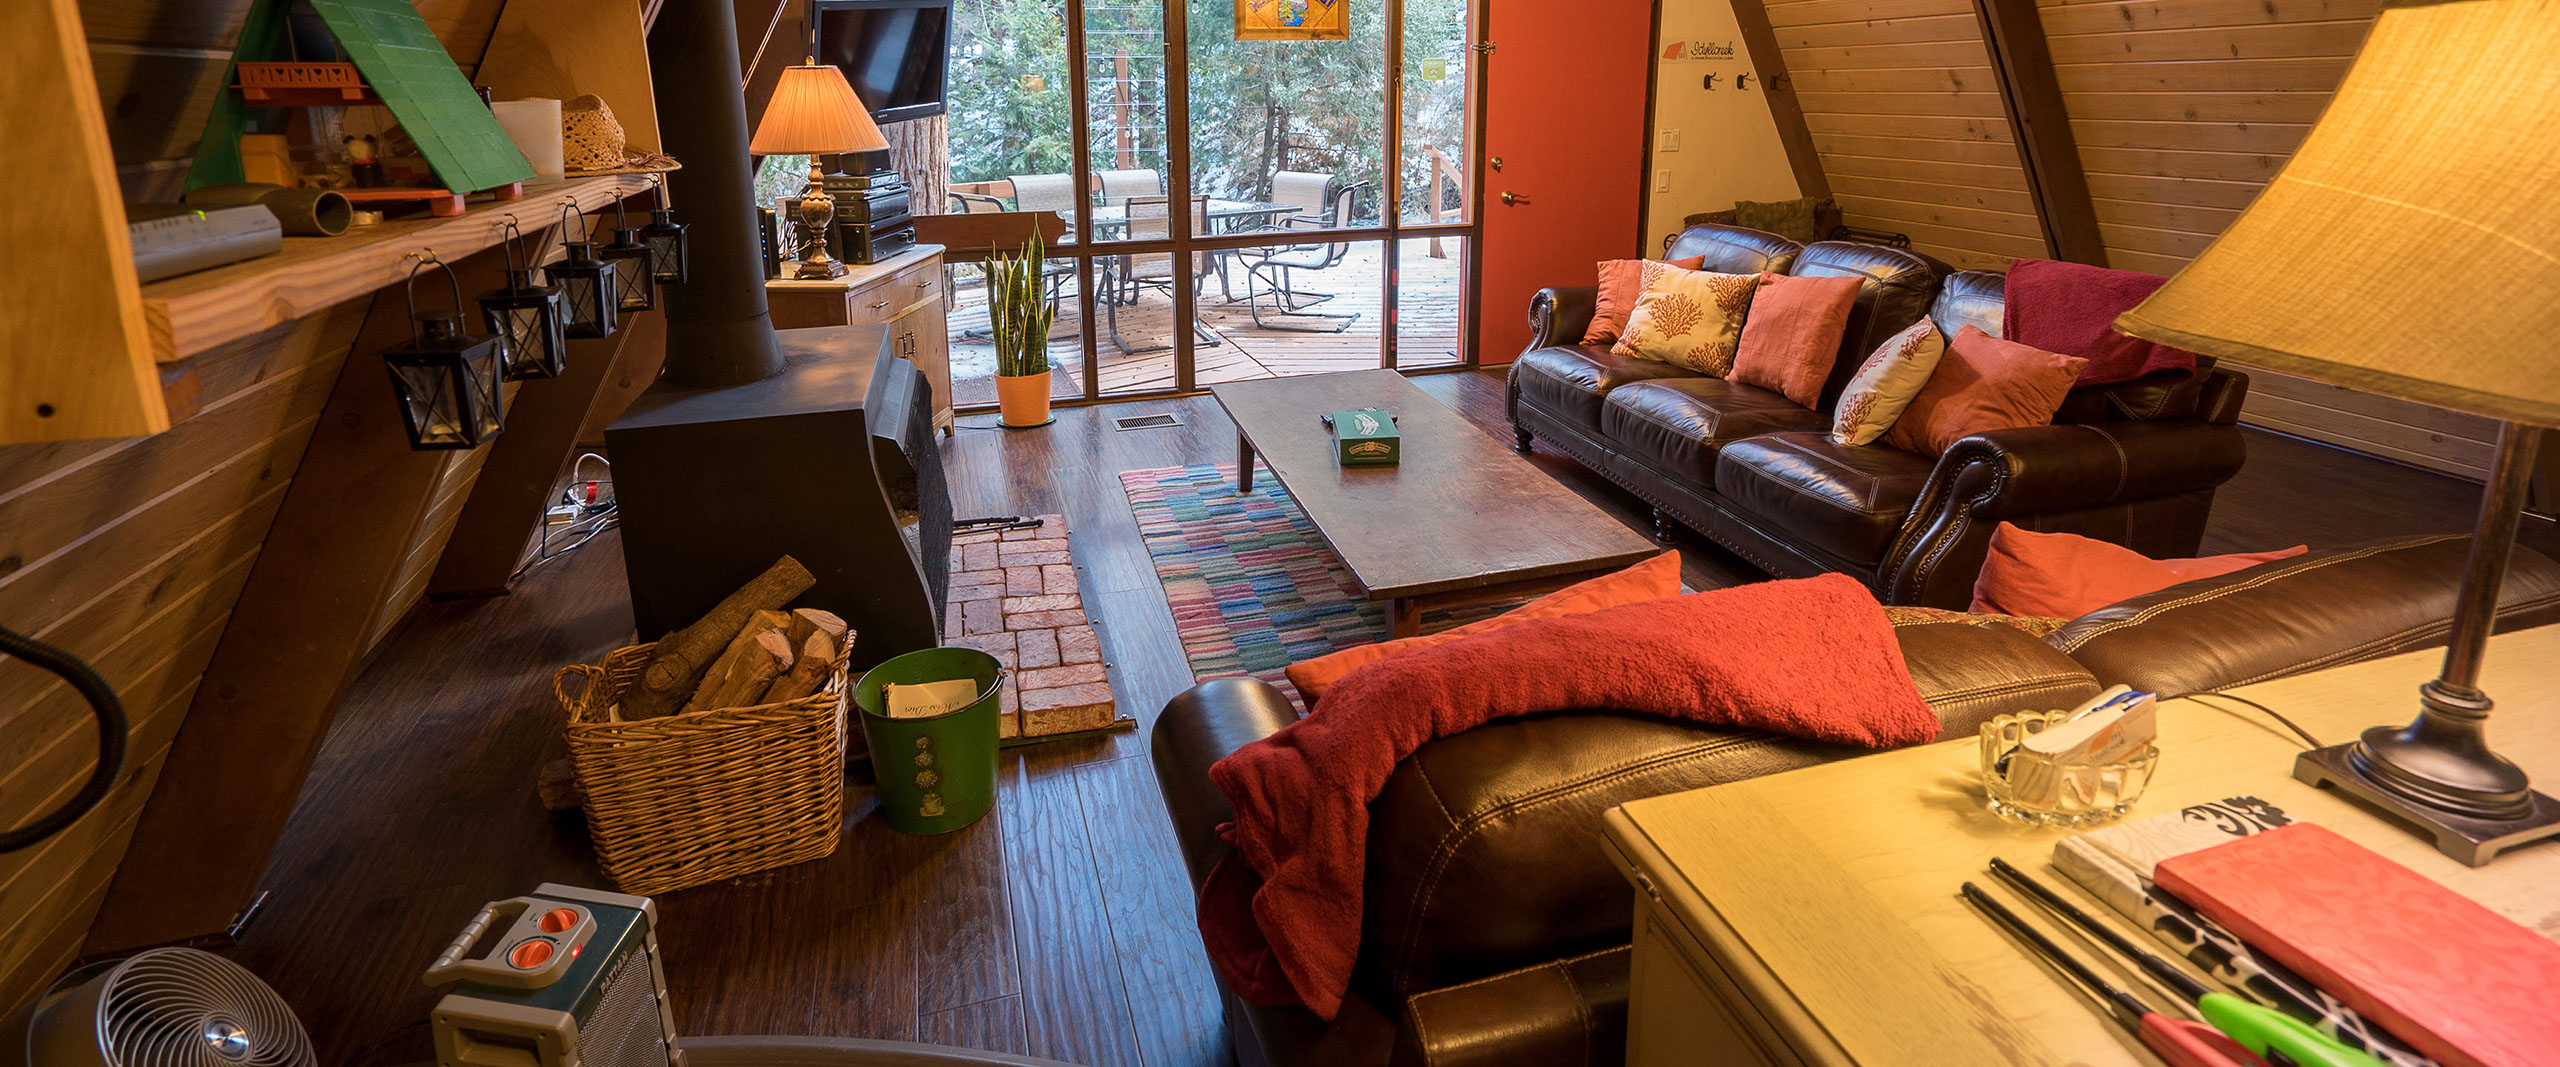 empire br fabulous inland ca cabin vrbo rental vacation pin in cabins idyllwild